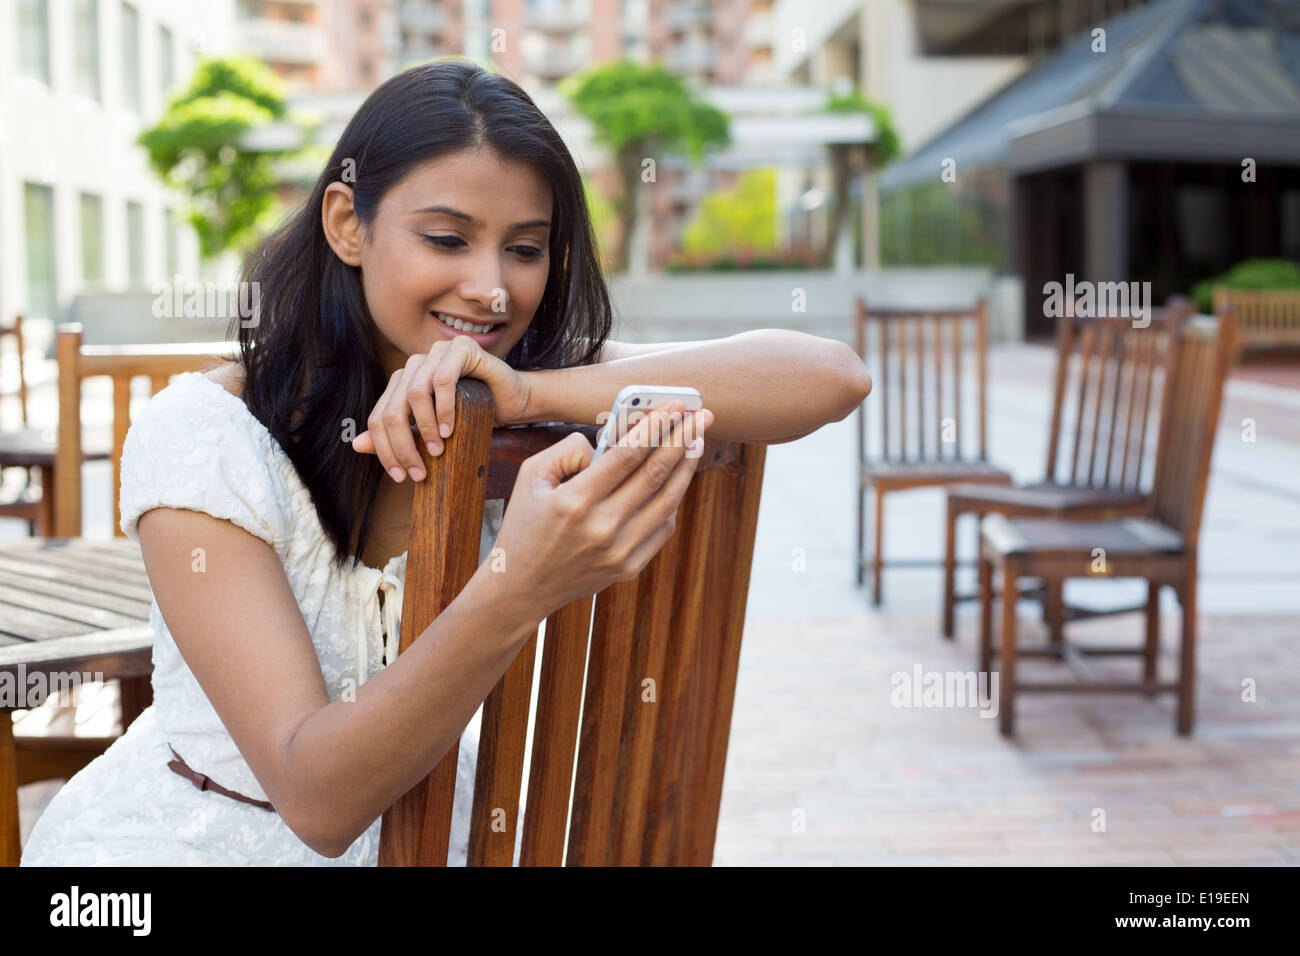 Browsing text messages - Stock Image